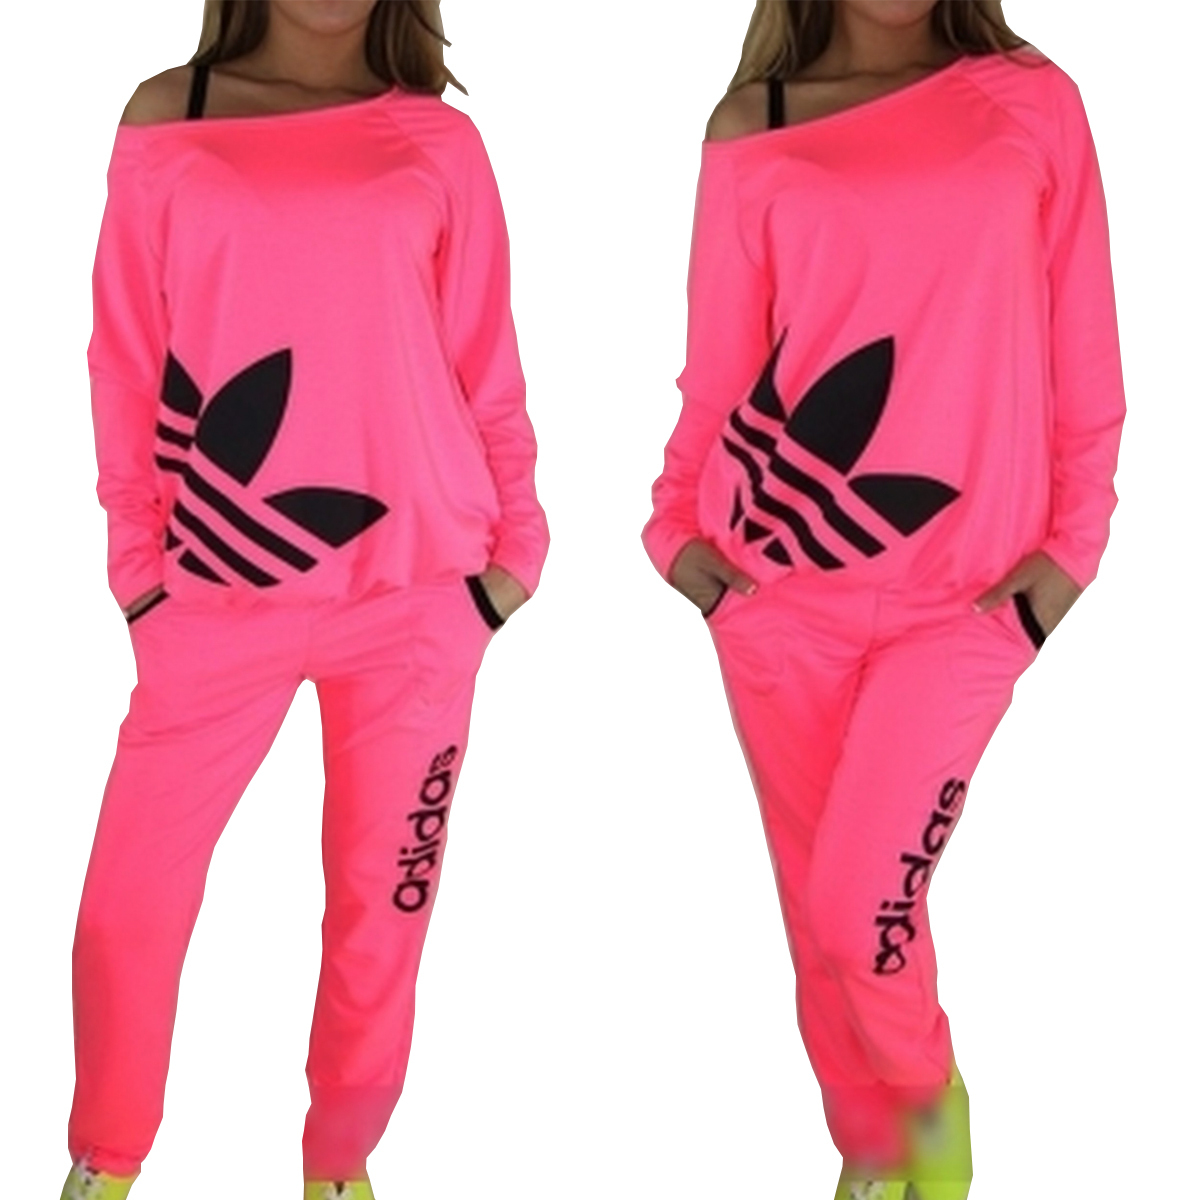 Adidas Neon Women Tracksuit Sweatsuit Track Pants Tops pink - Athletic Apparel